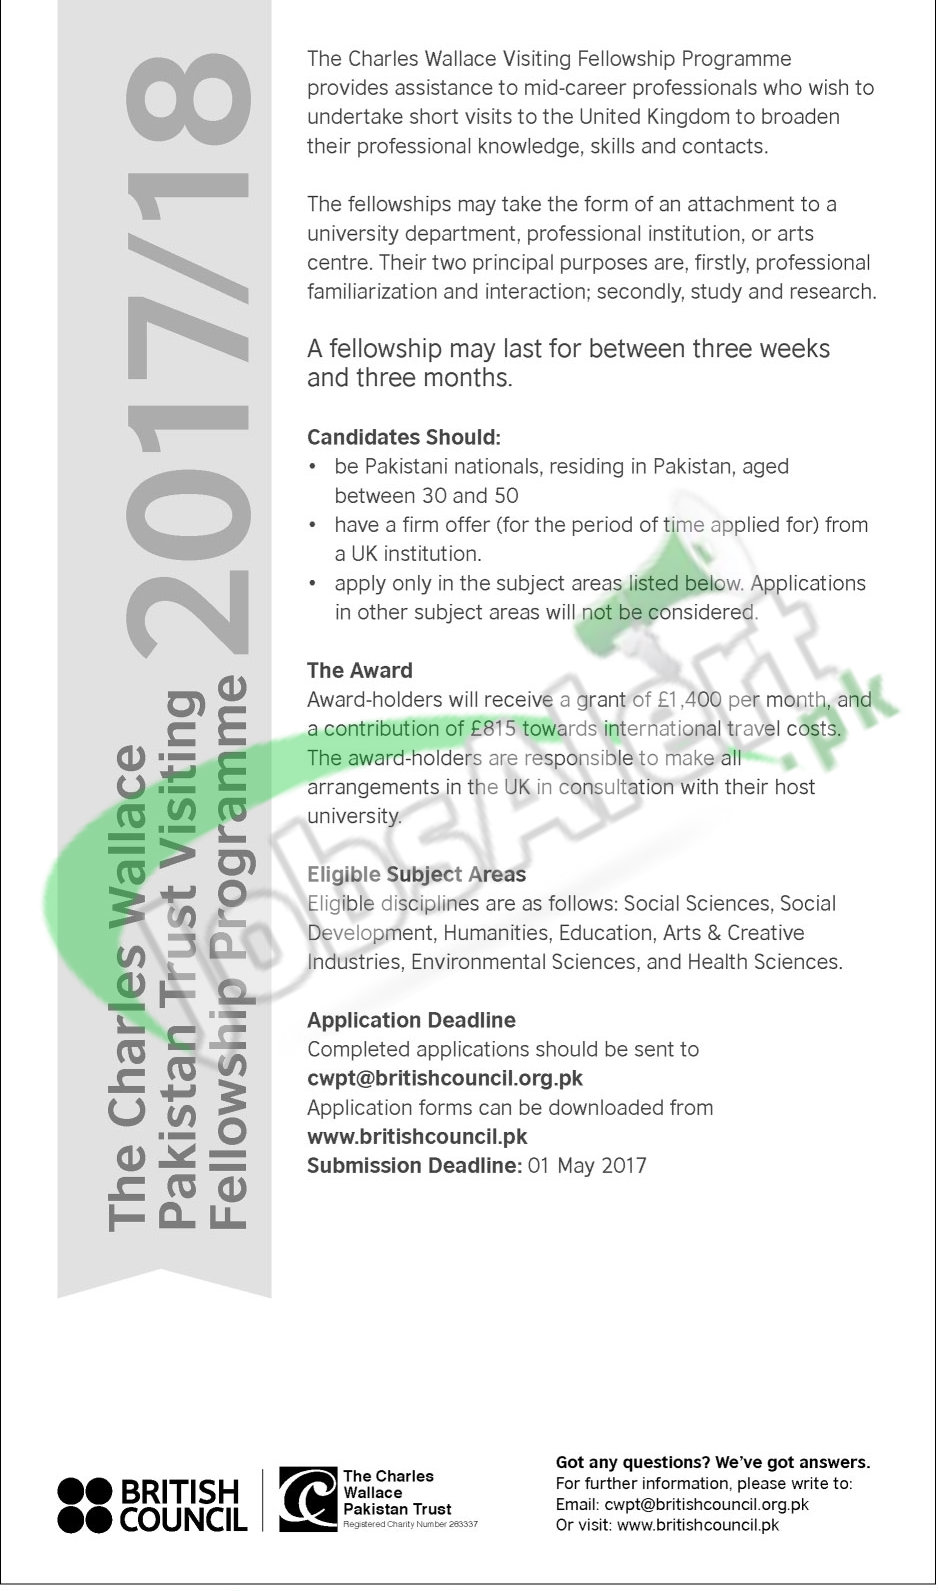 Charles Wallace Pakistan Trust Scholarships